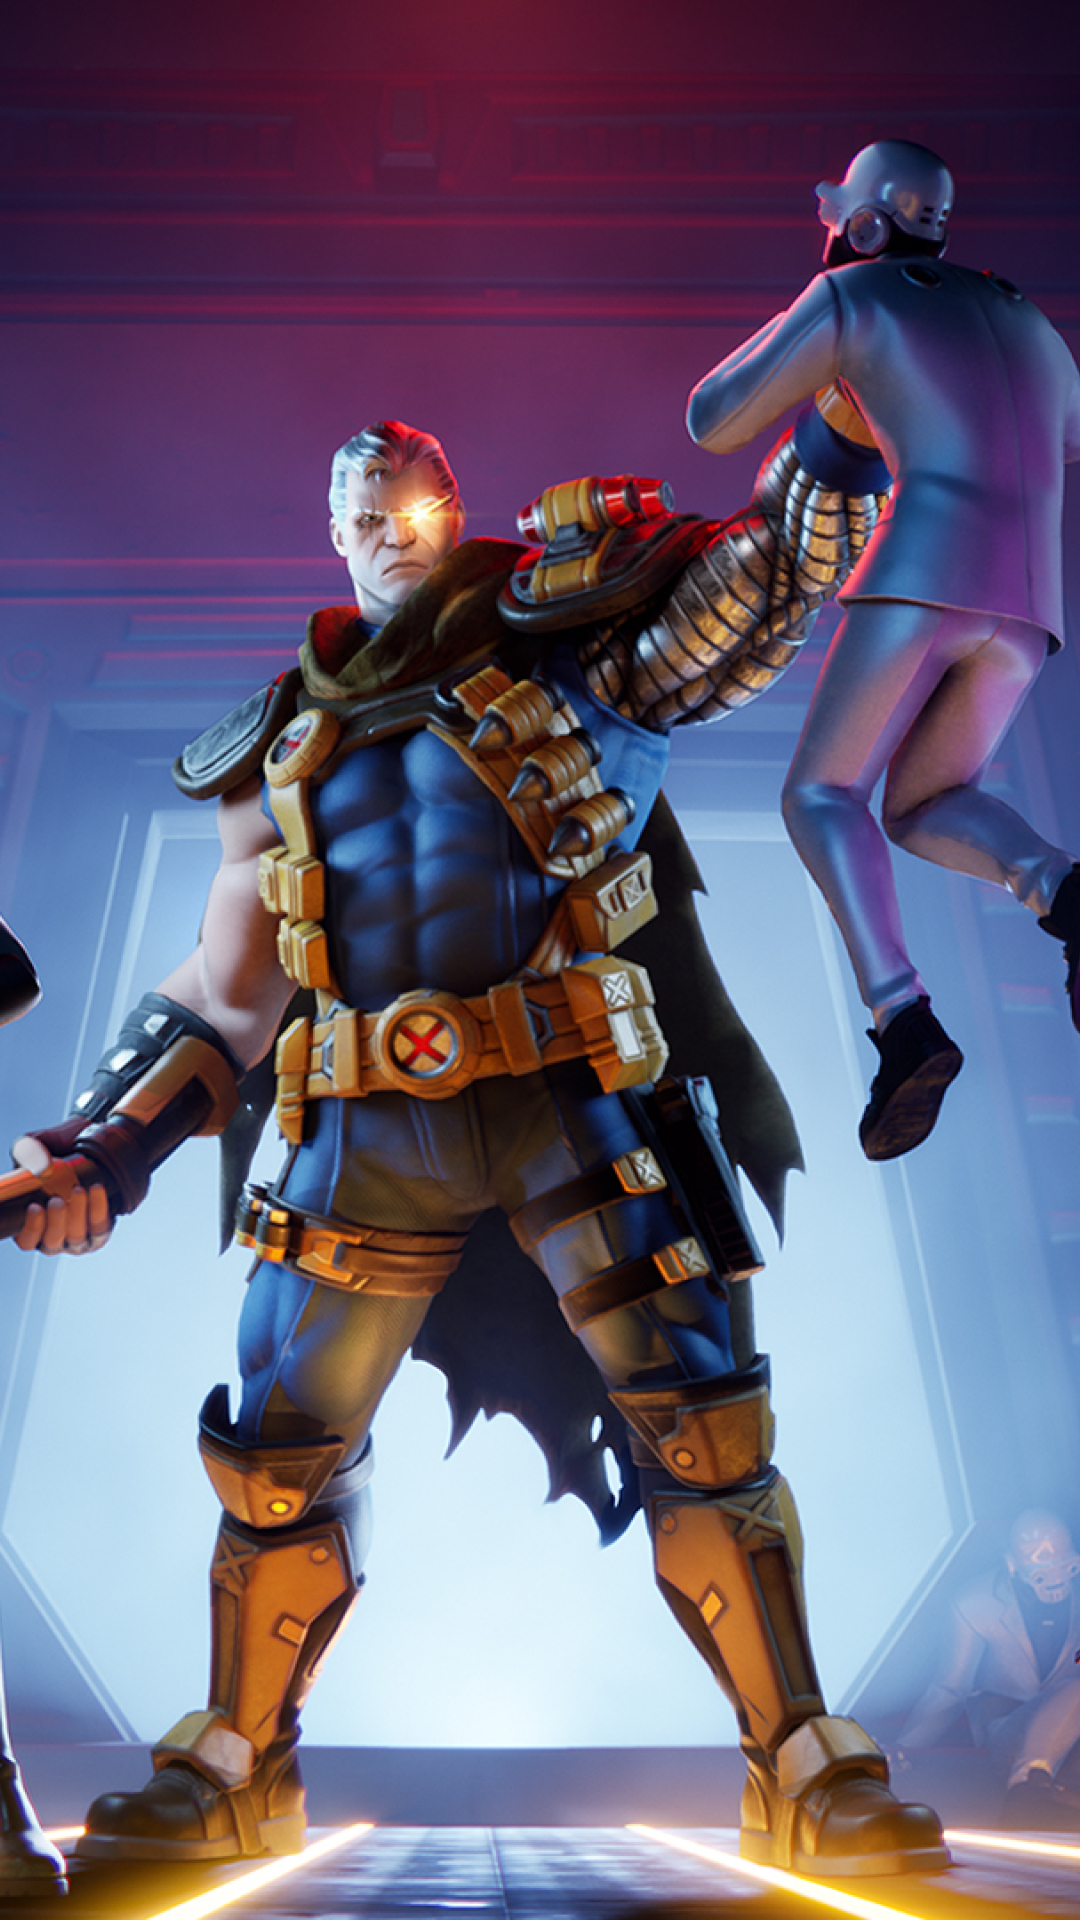 1080x1920 X-Force Fortnite Iphone 7, 6s, 6 Plus and Pixel ...